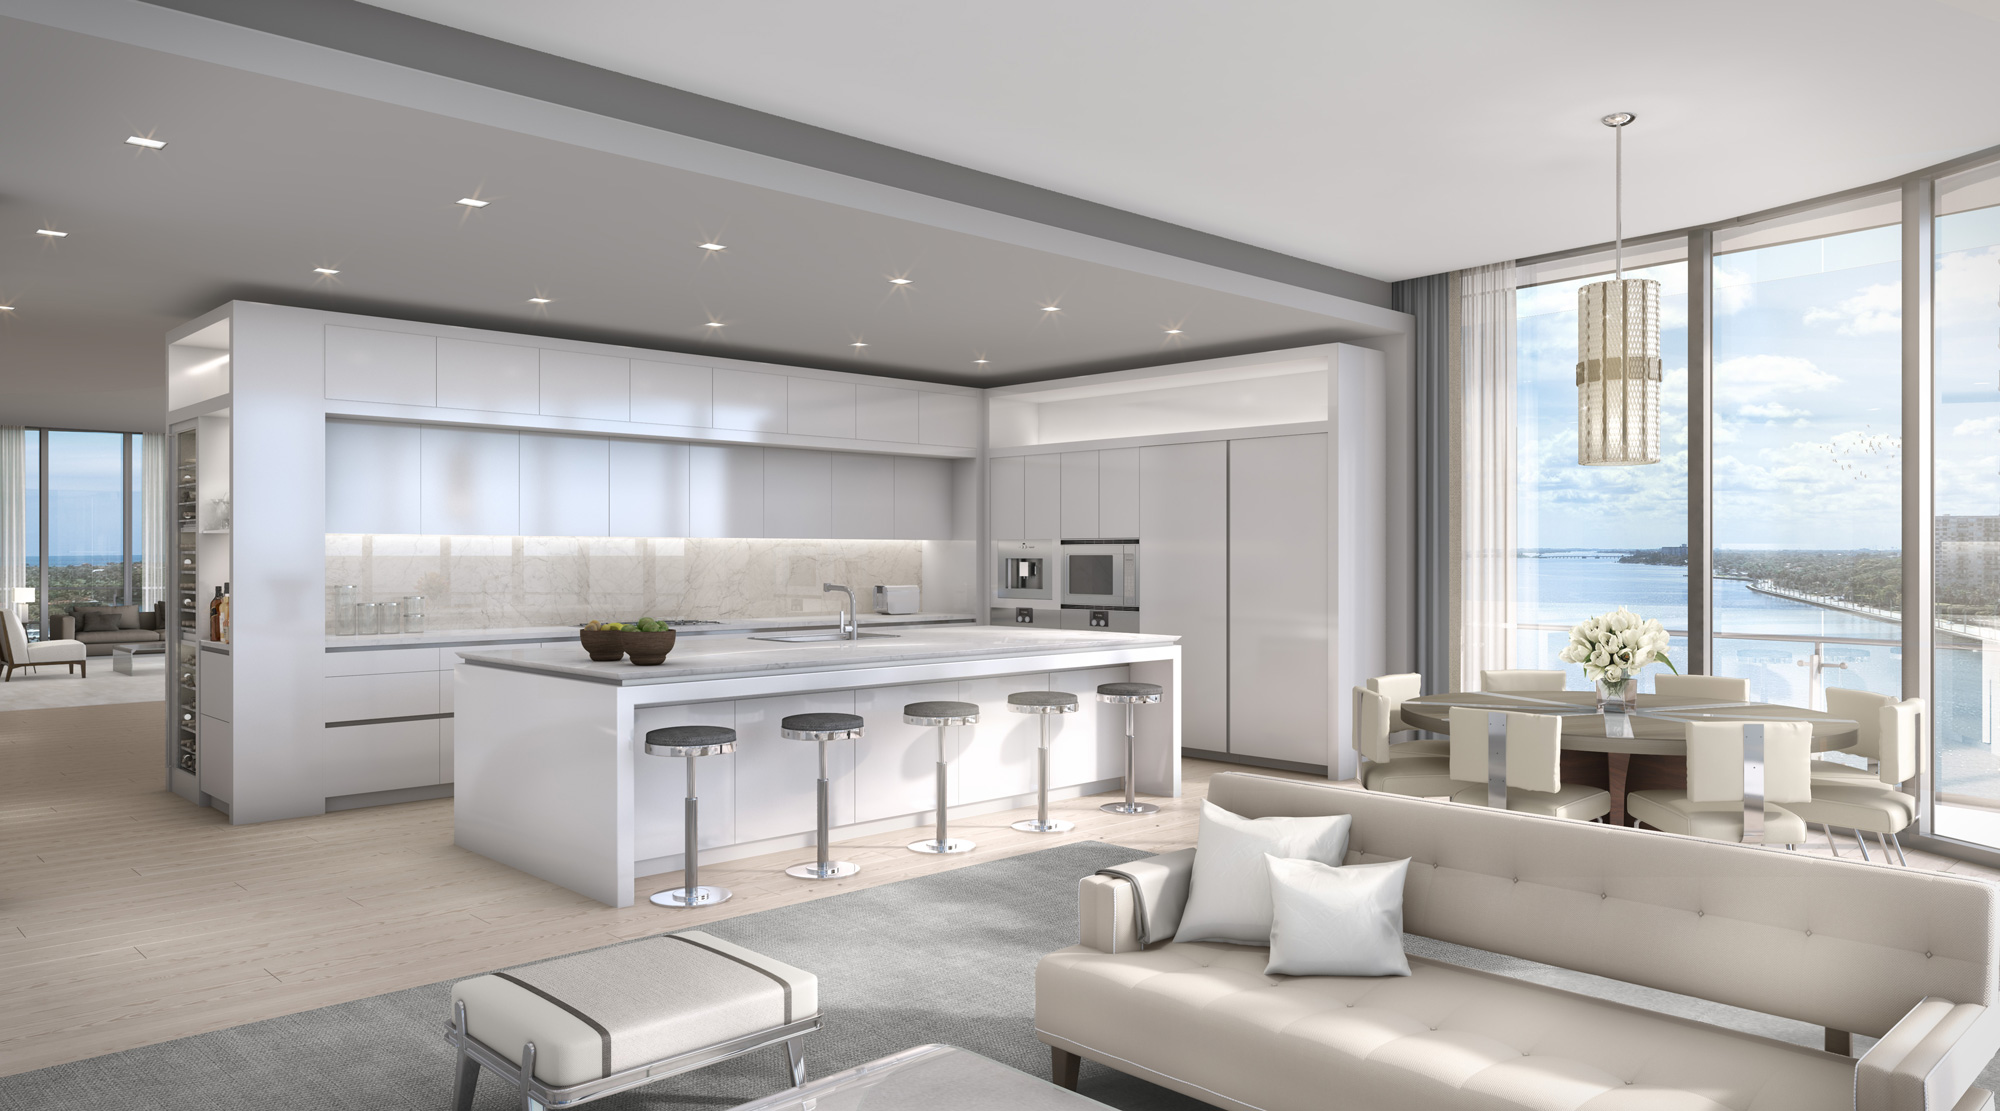 Bristol - West Plam Beach 2 (kitchen) & Snaidero USA selected as kitchen cabinets supplier for the Bristol ...